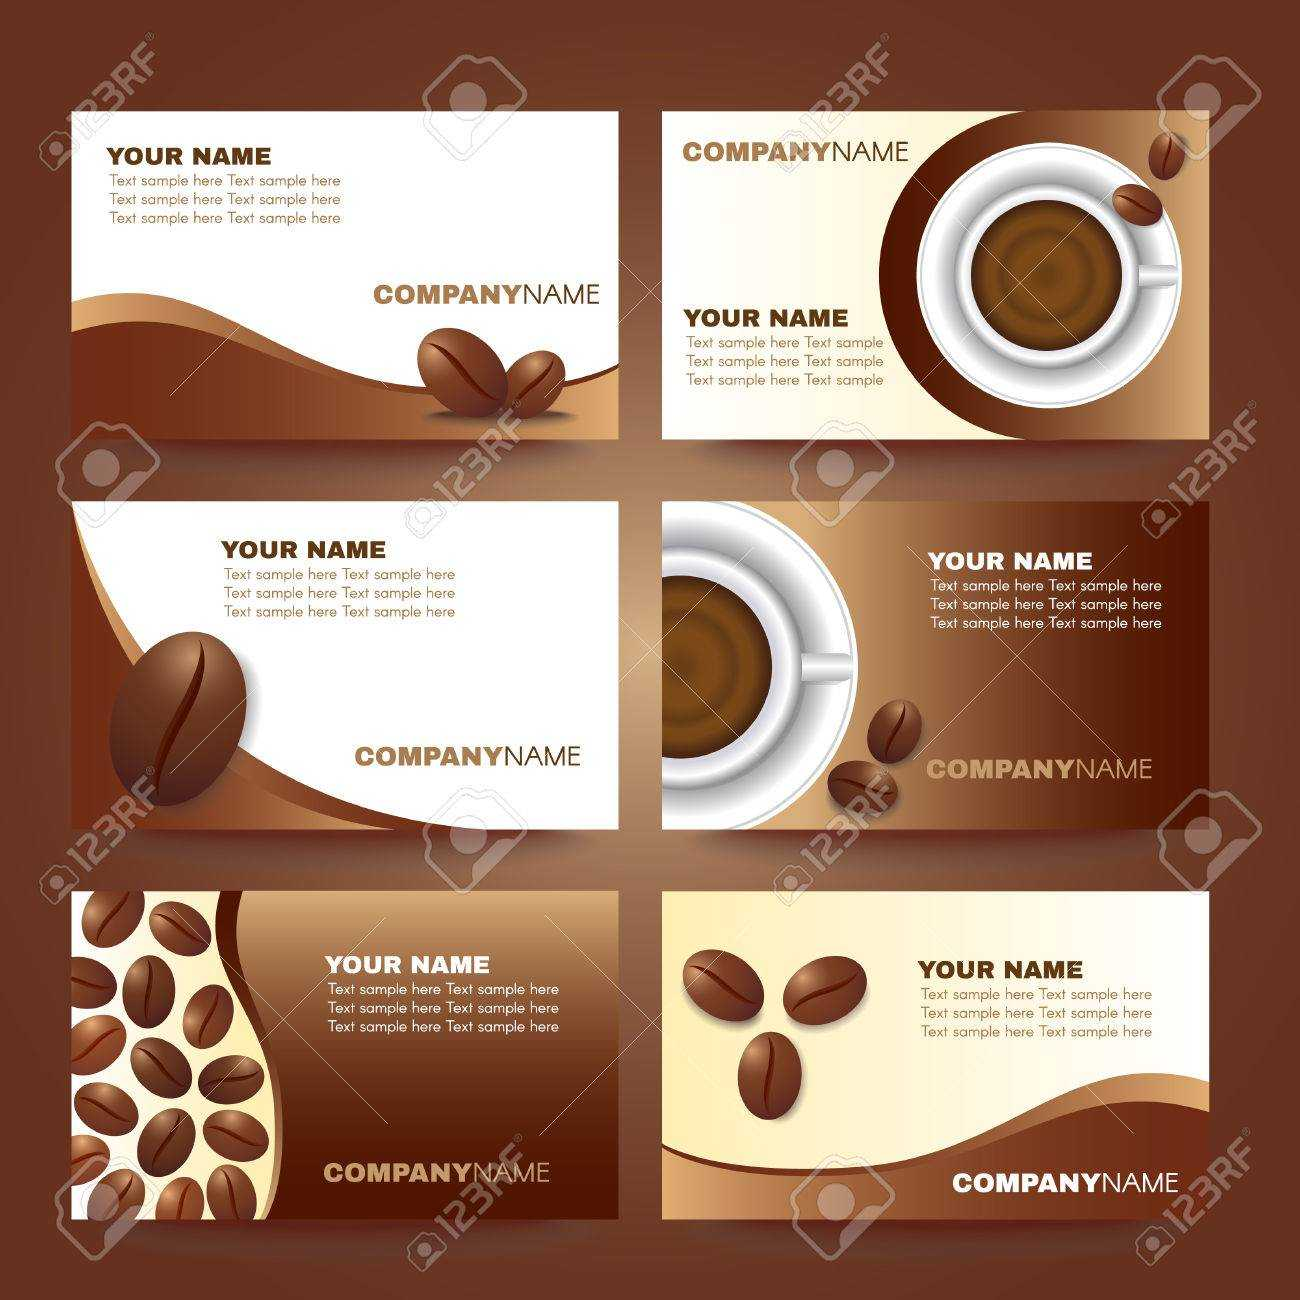 Coffee Business Card Template Vector Set Design For Coffee Business Card Template Free